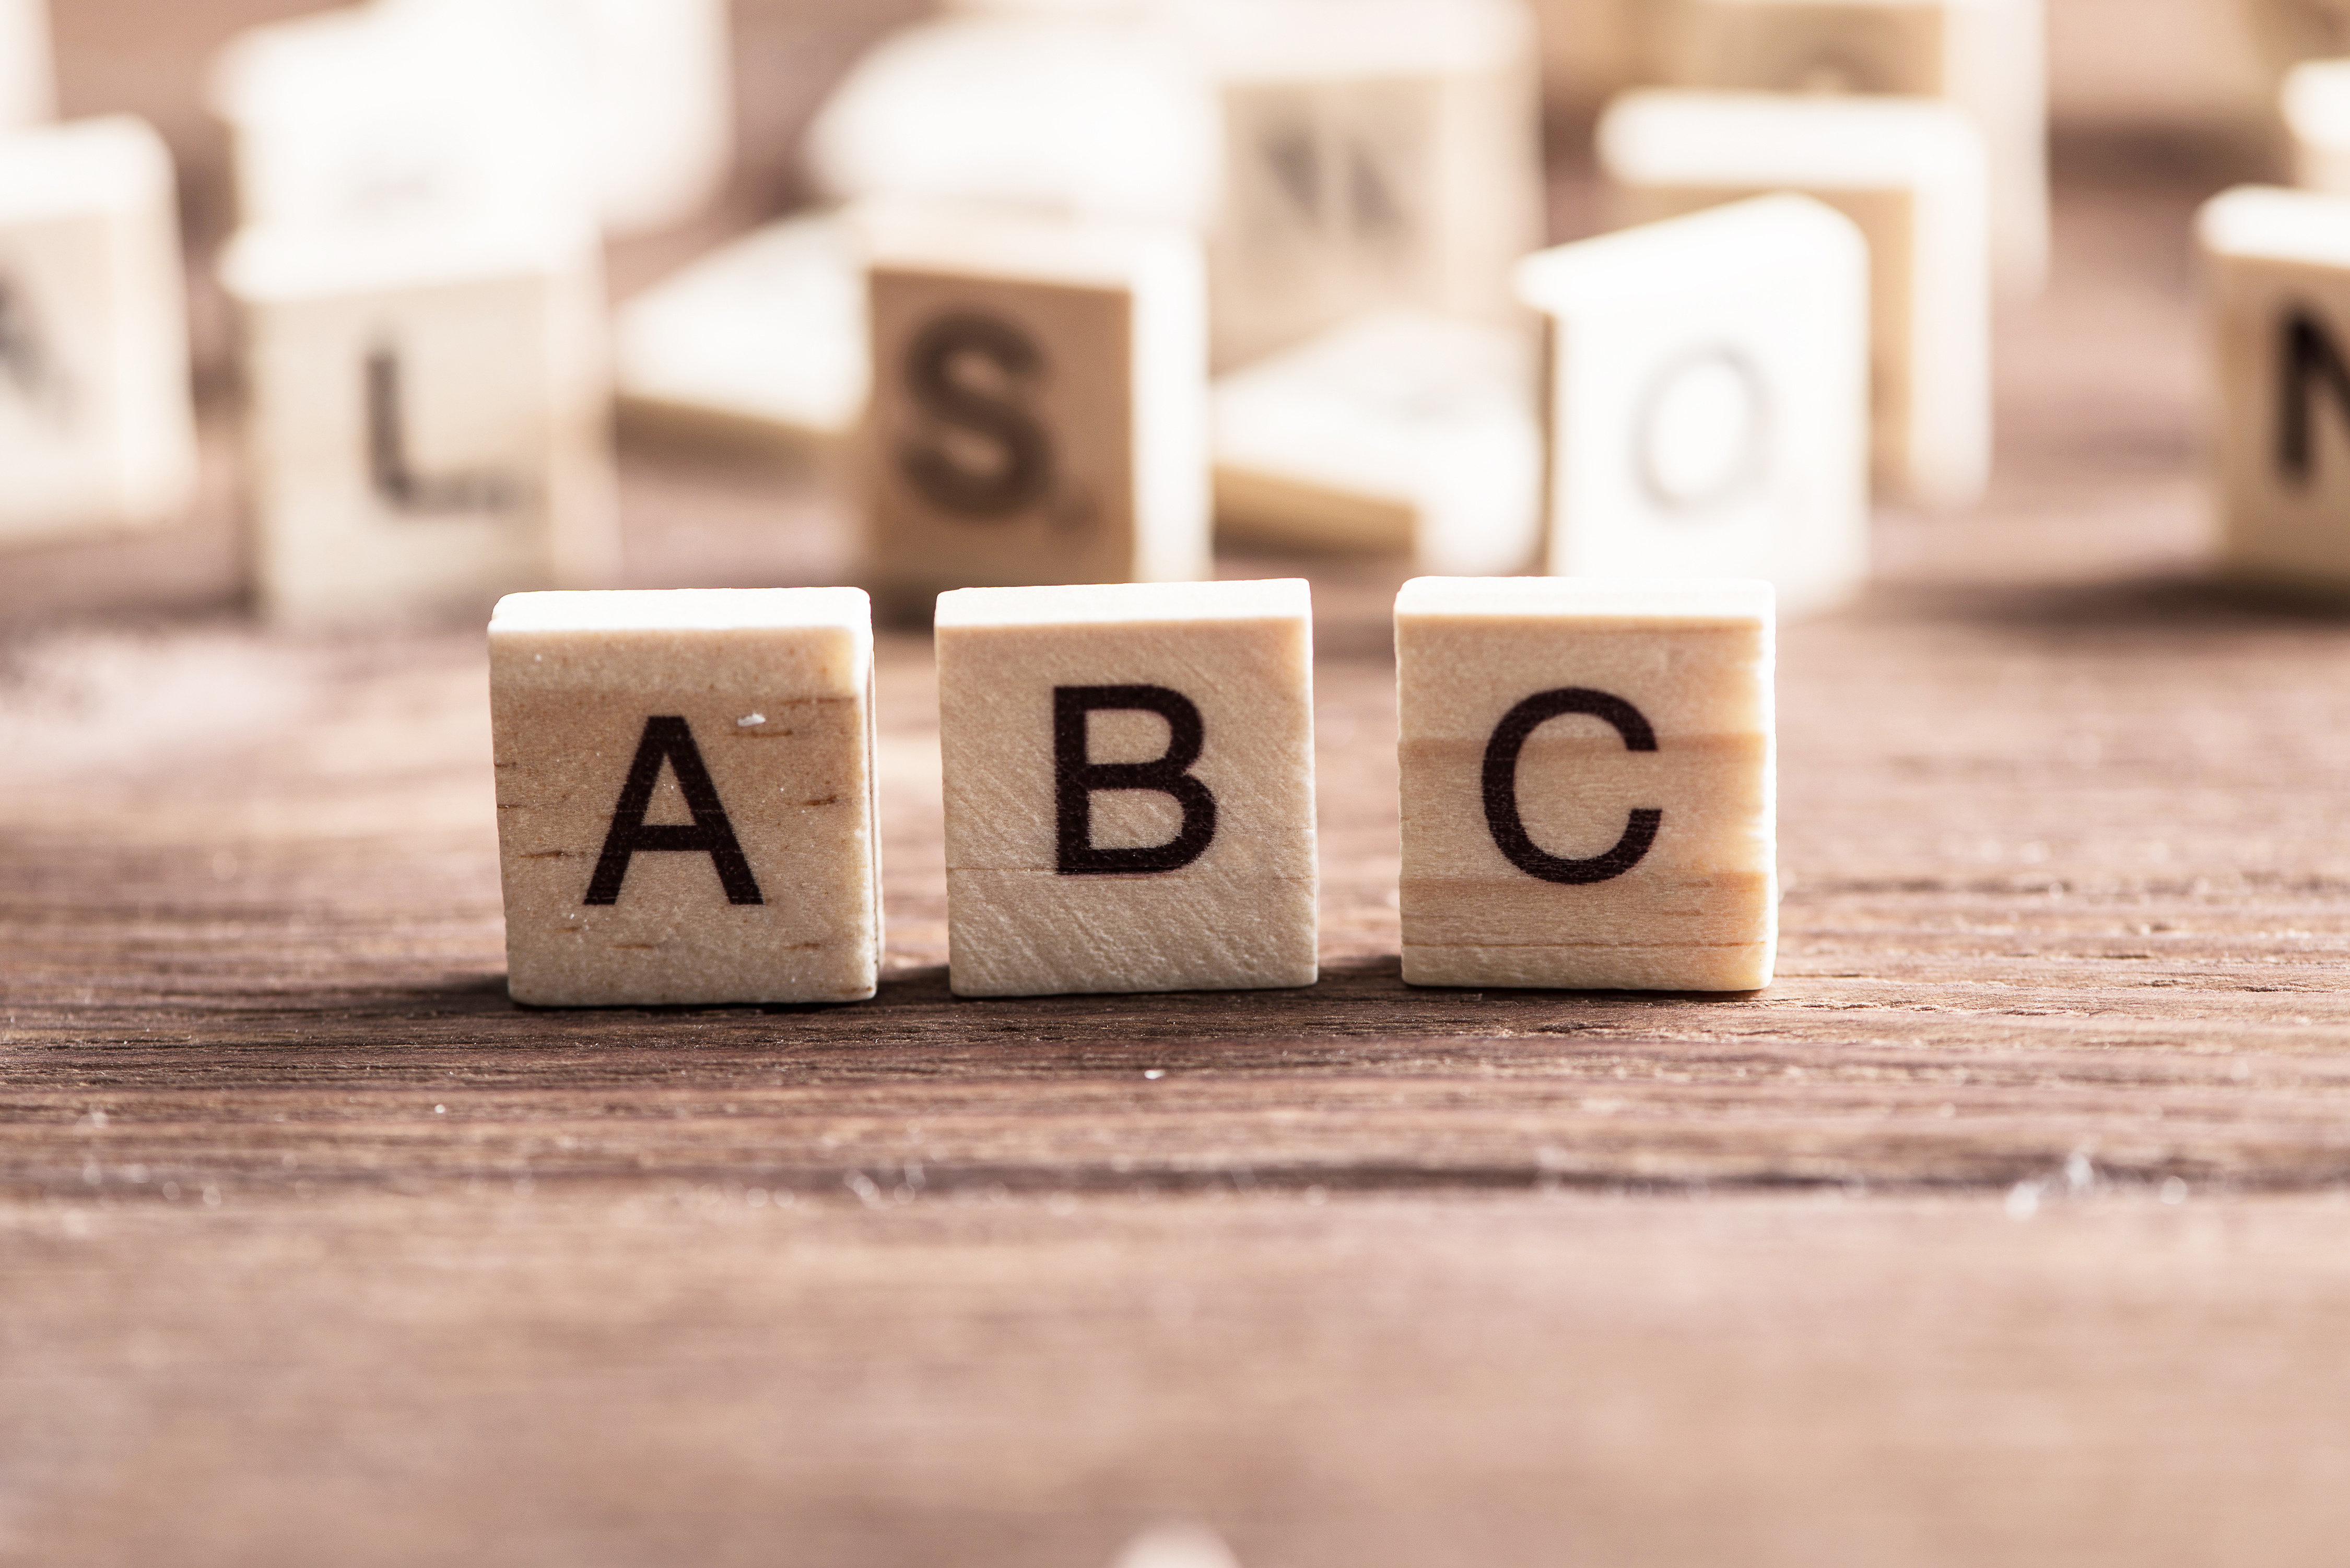 Dices showing the letters A, B, C